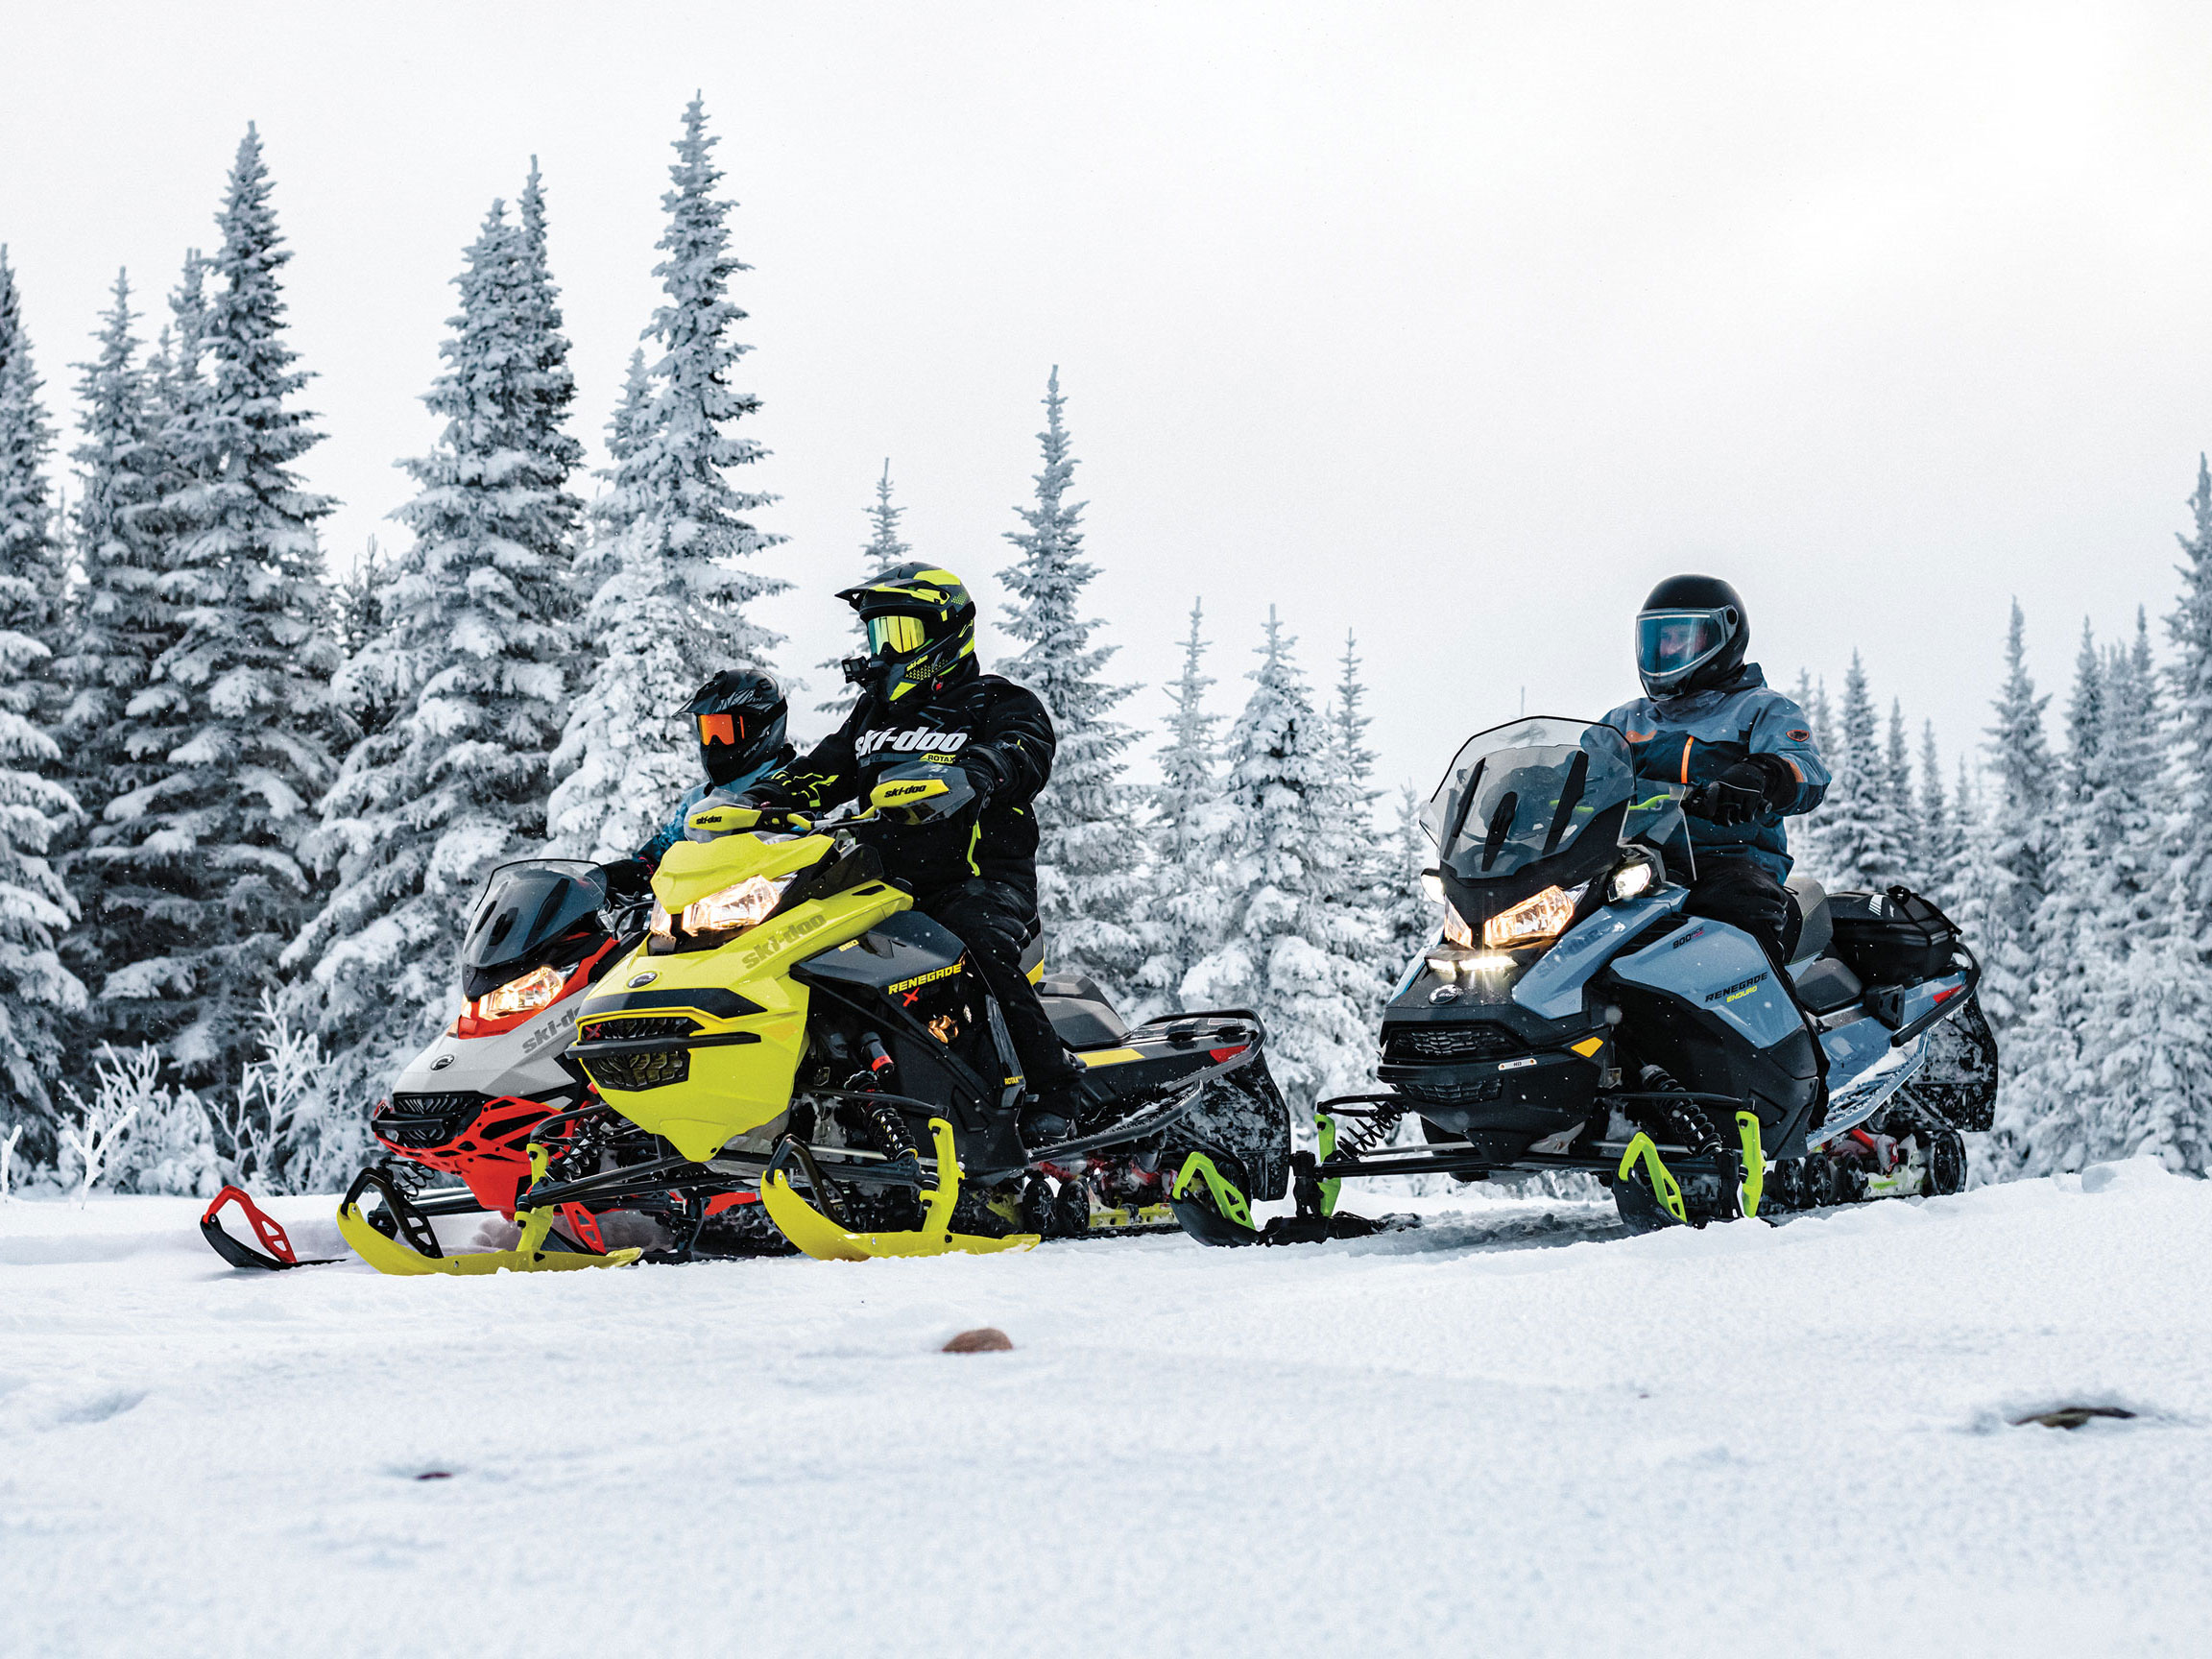 Riders on their Ski-Doo